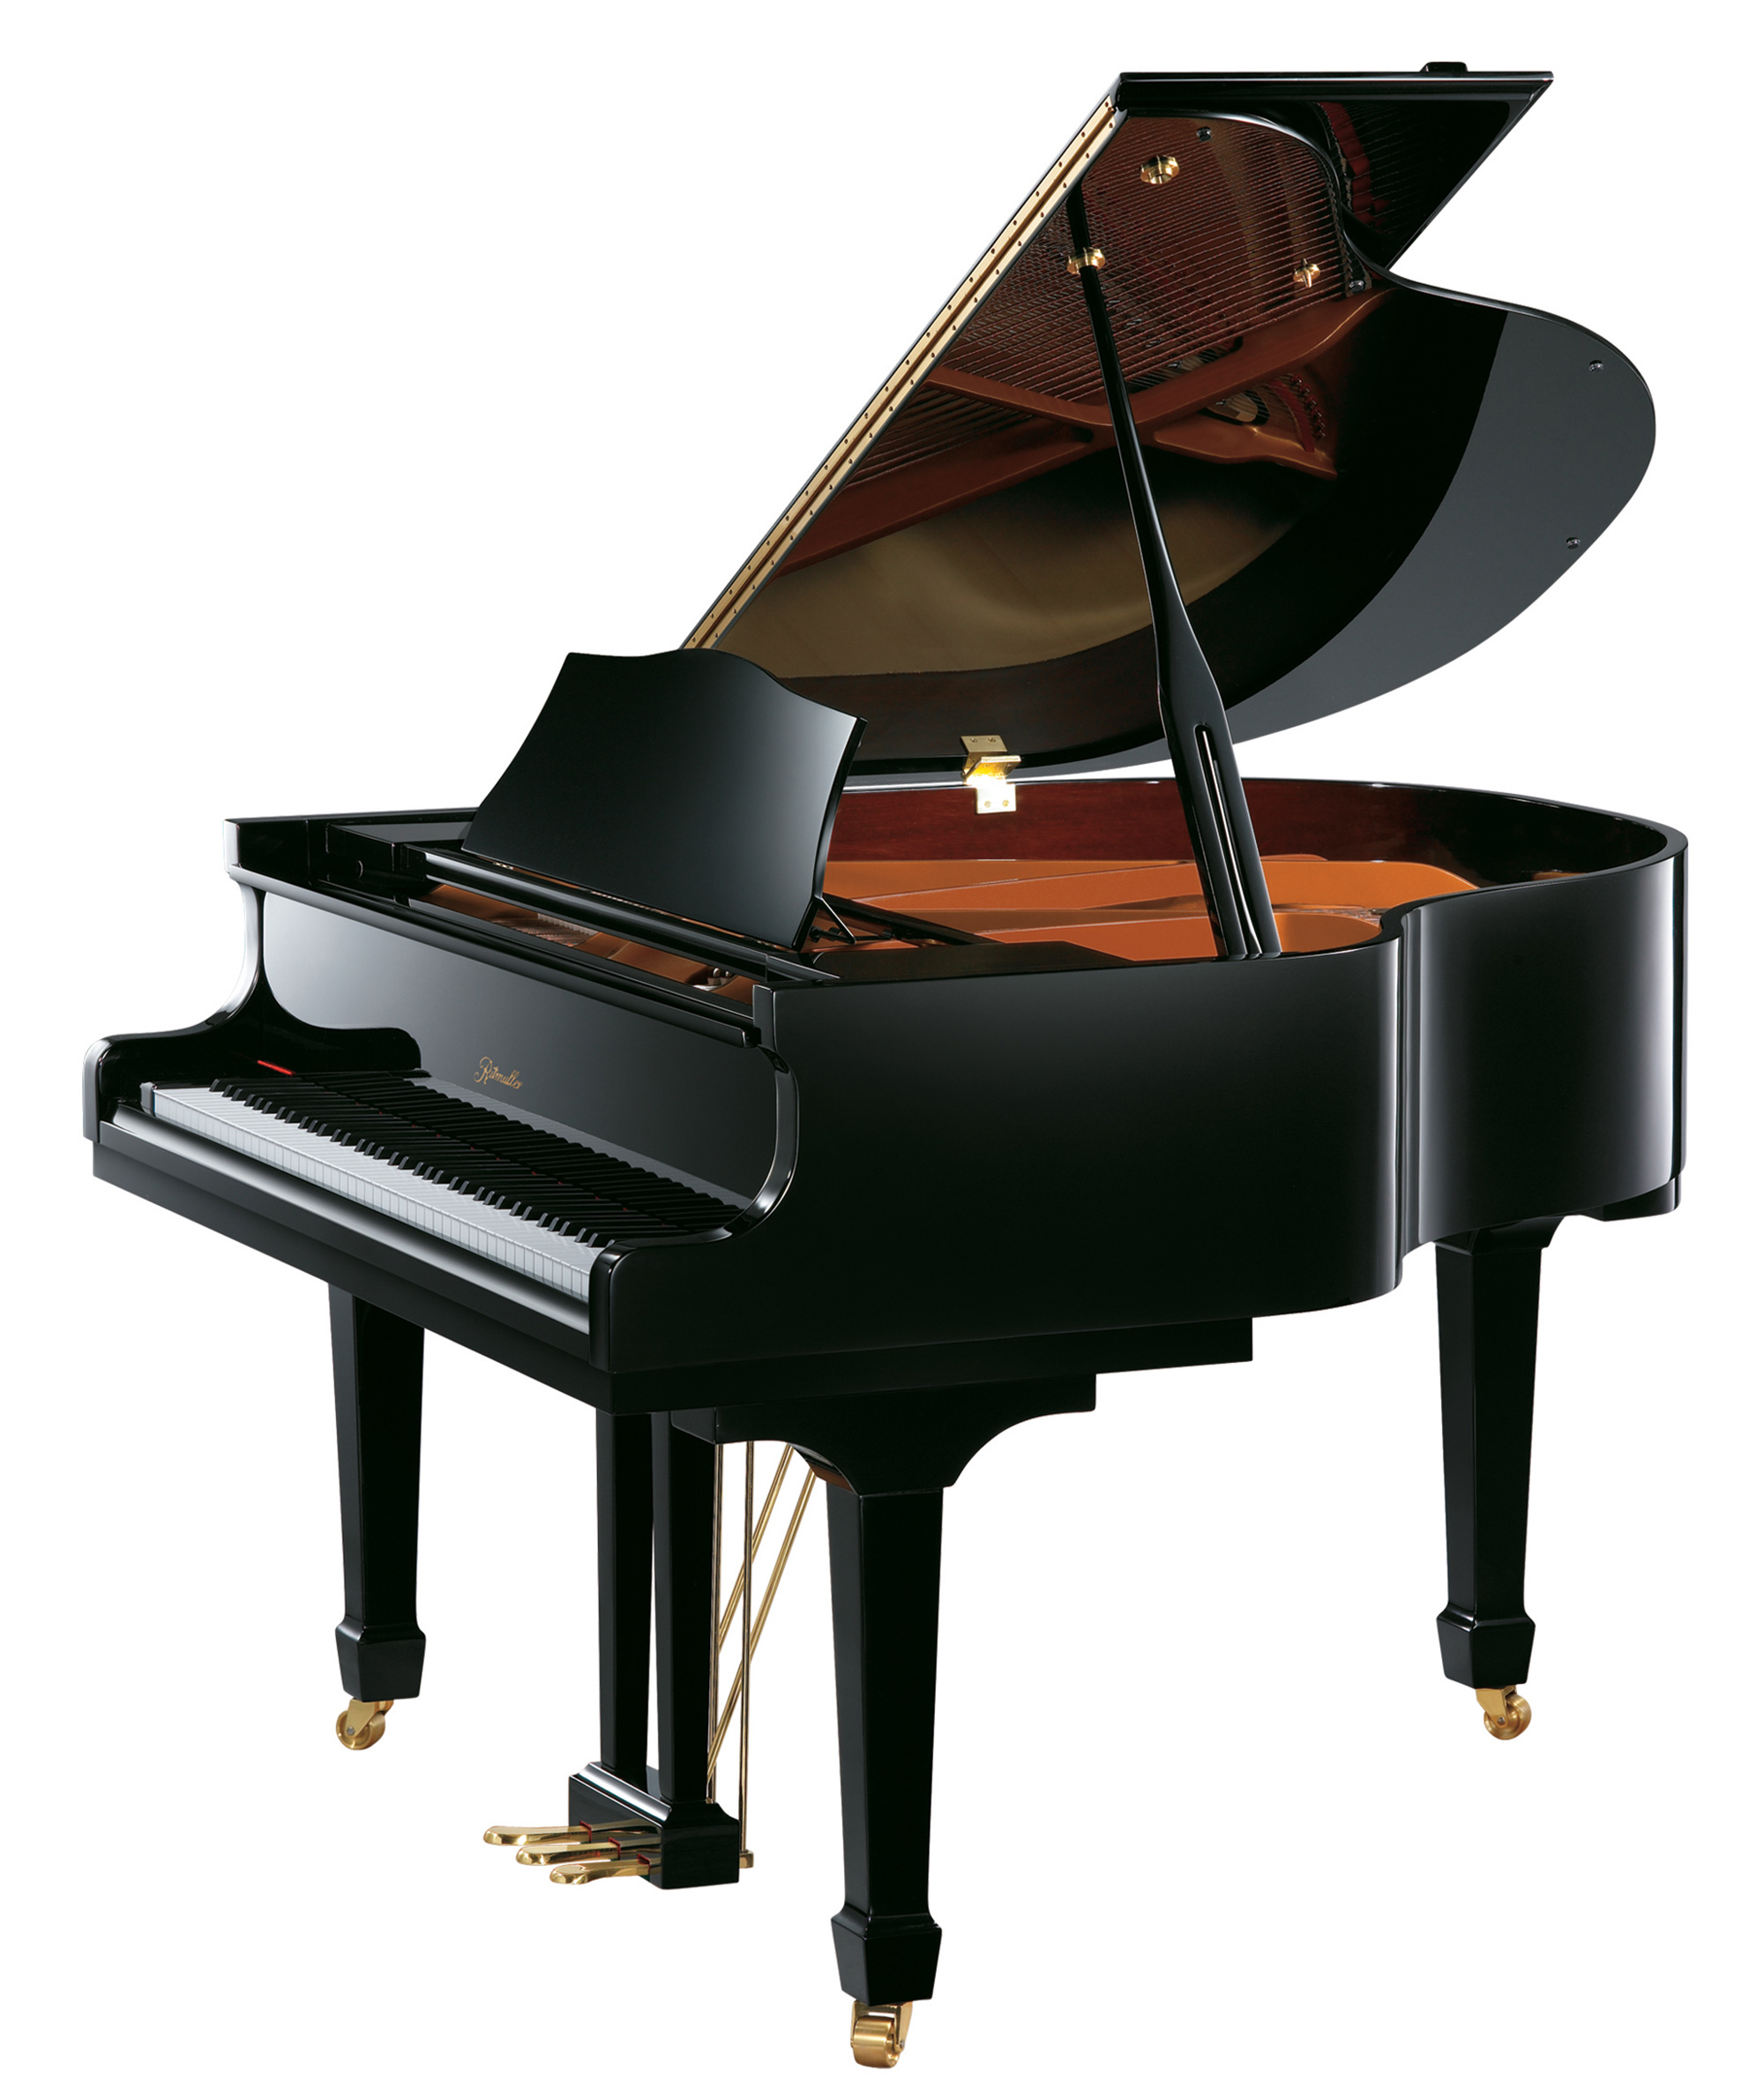 new-piano-for-sale-ritmuller-gh148r